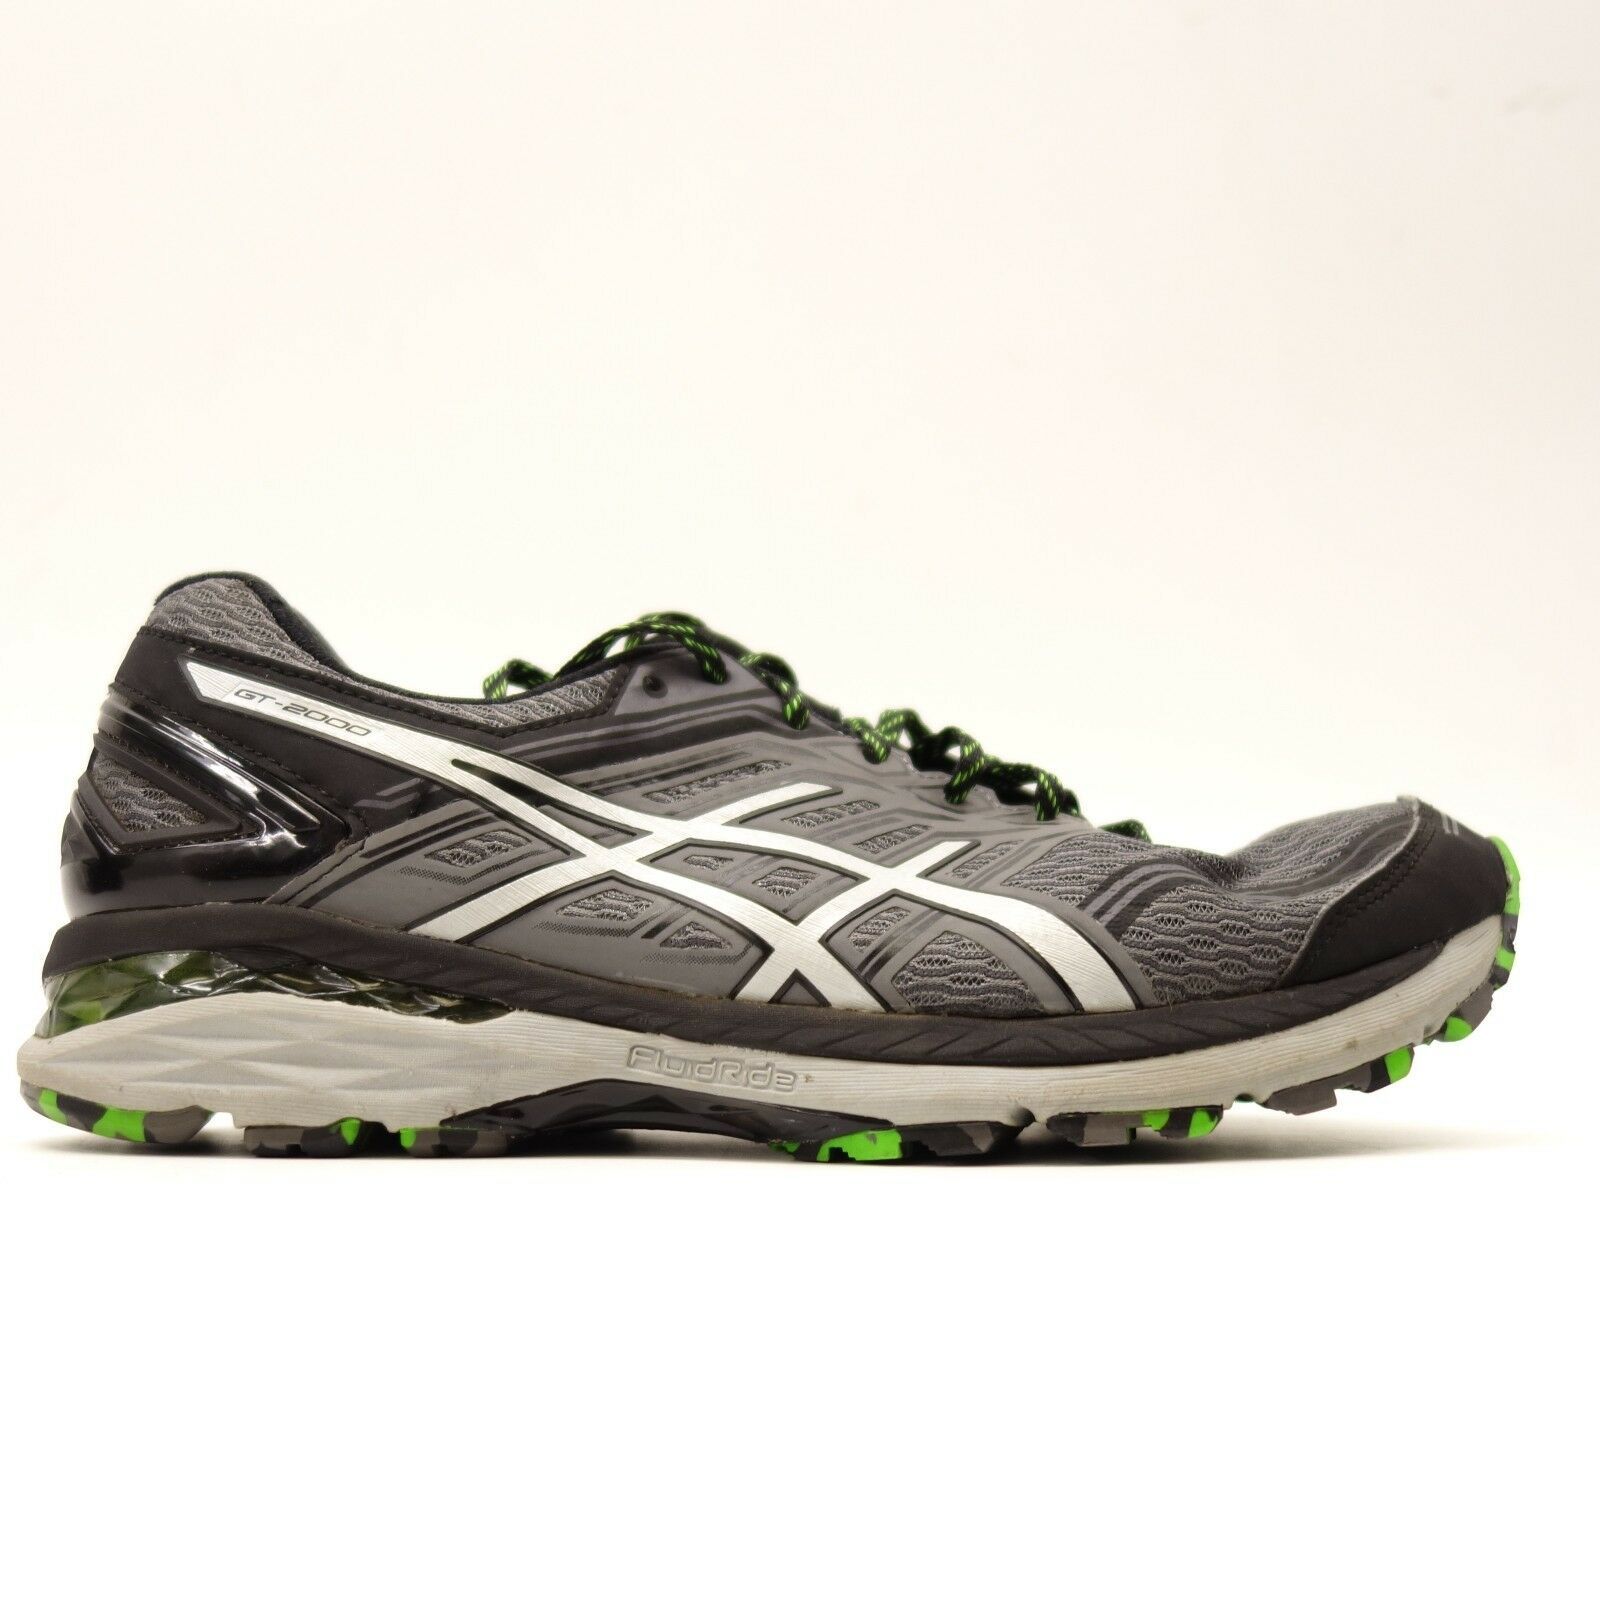 huge selection of bd88d c222b asic gt2000 5 t707n grigio atletica, atletica, atletica, corsa croce  chaussures da ginnastica taille   Fabrication Habile 31d40b